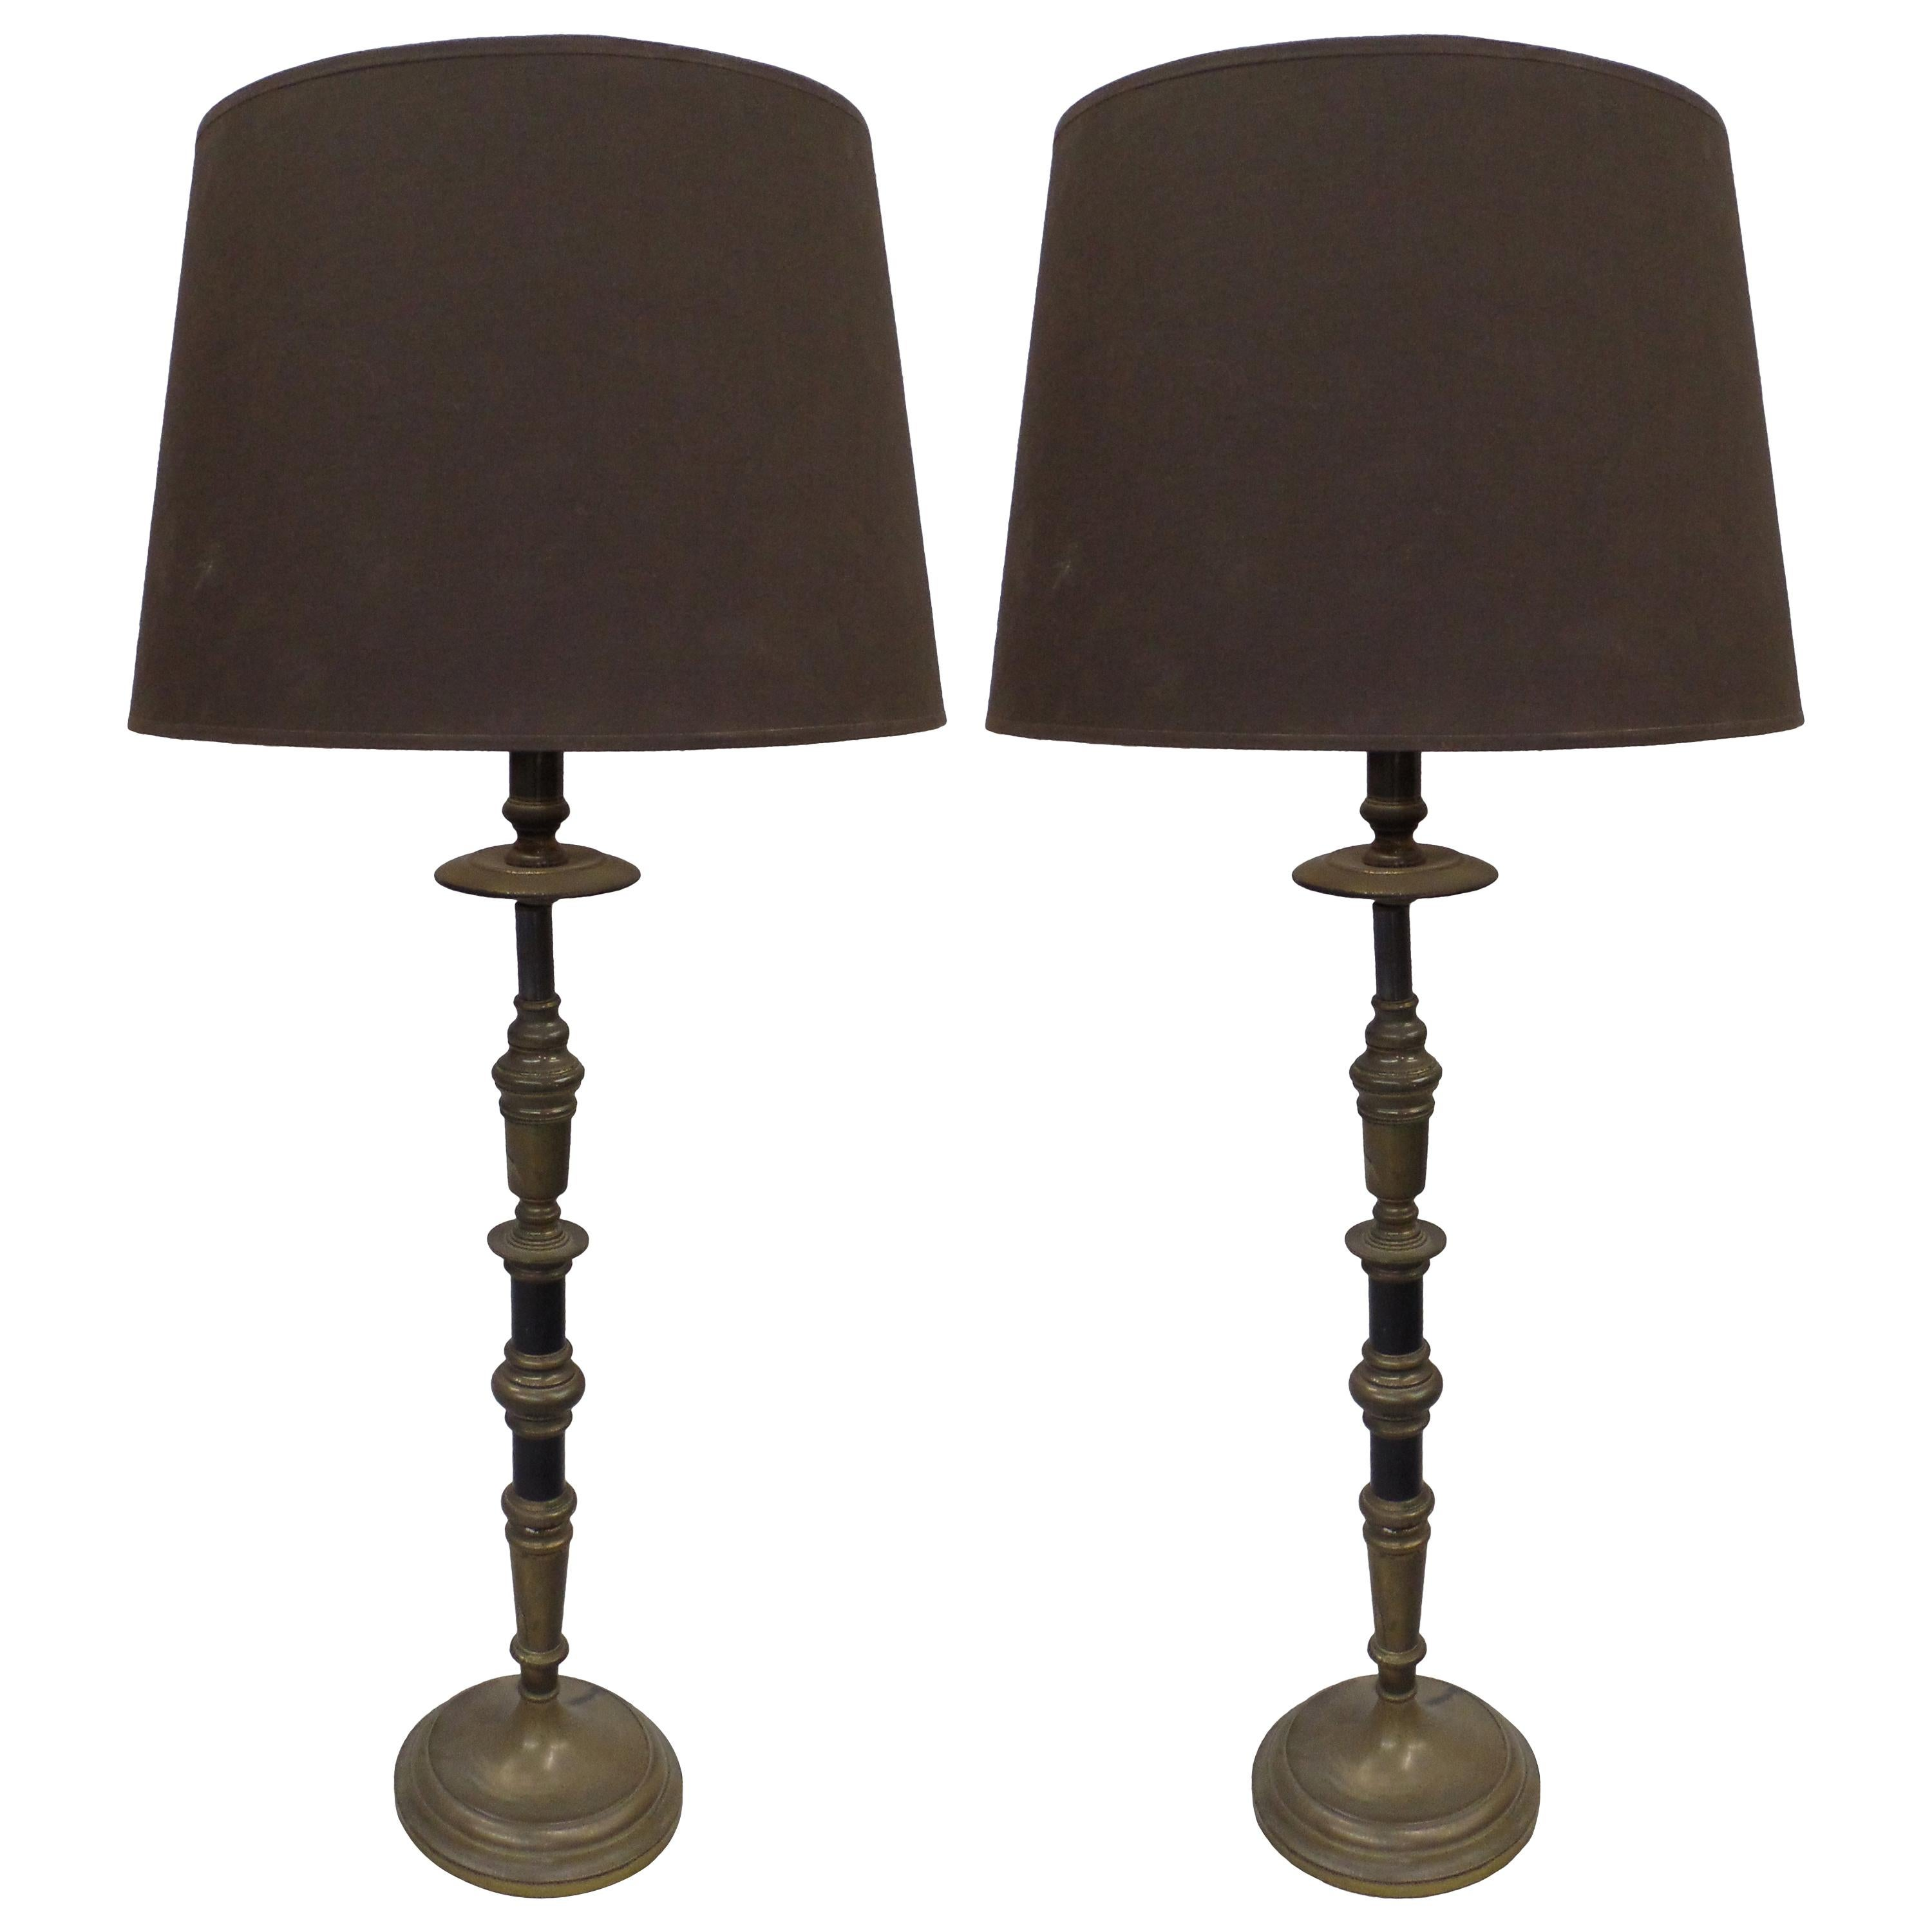 Pair of French Midcentury Neoclassical Candlestick Form Table Lamps, 1930